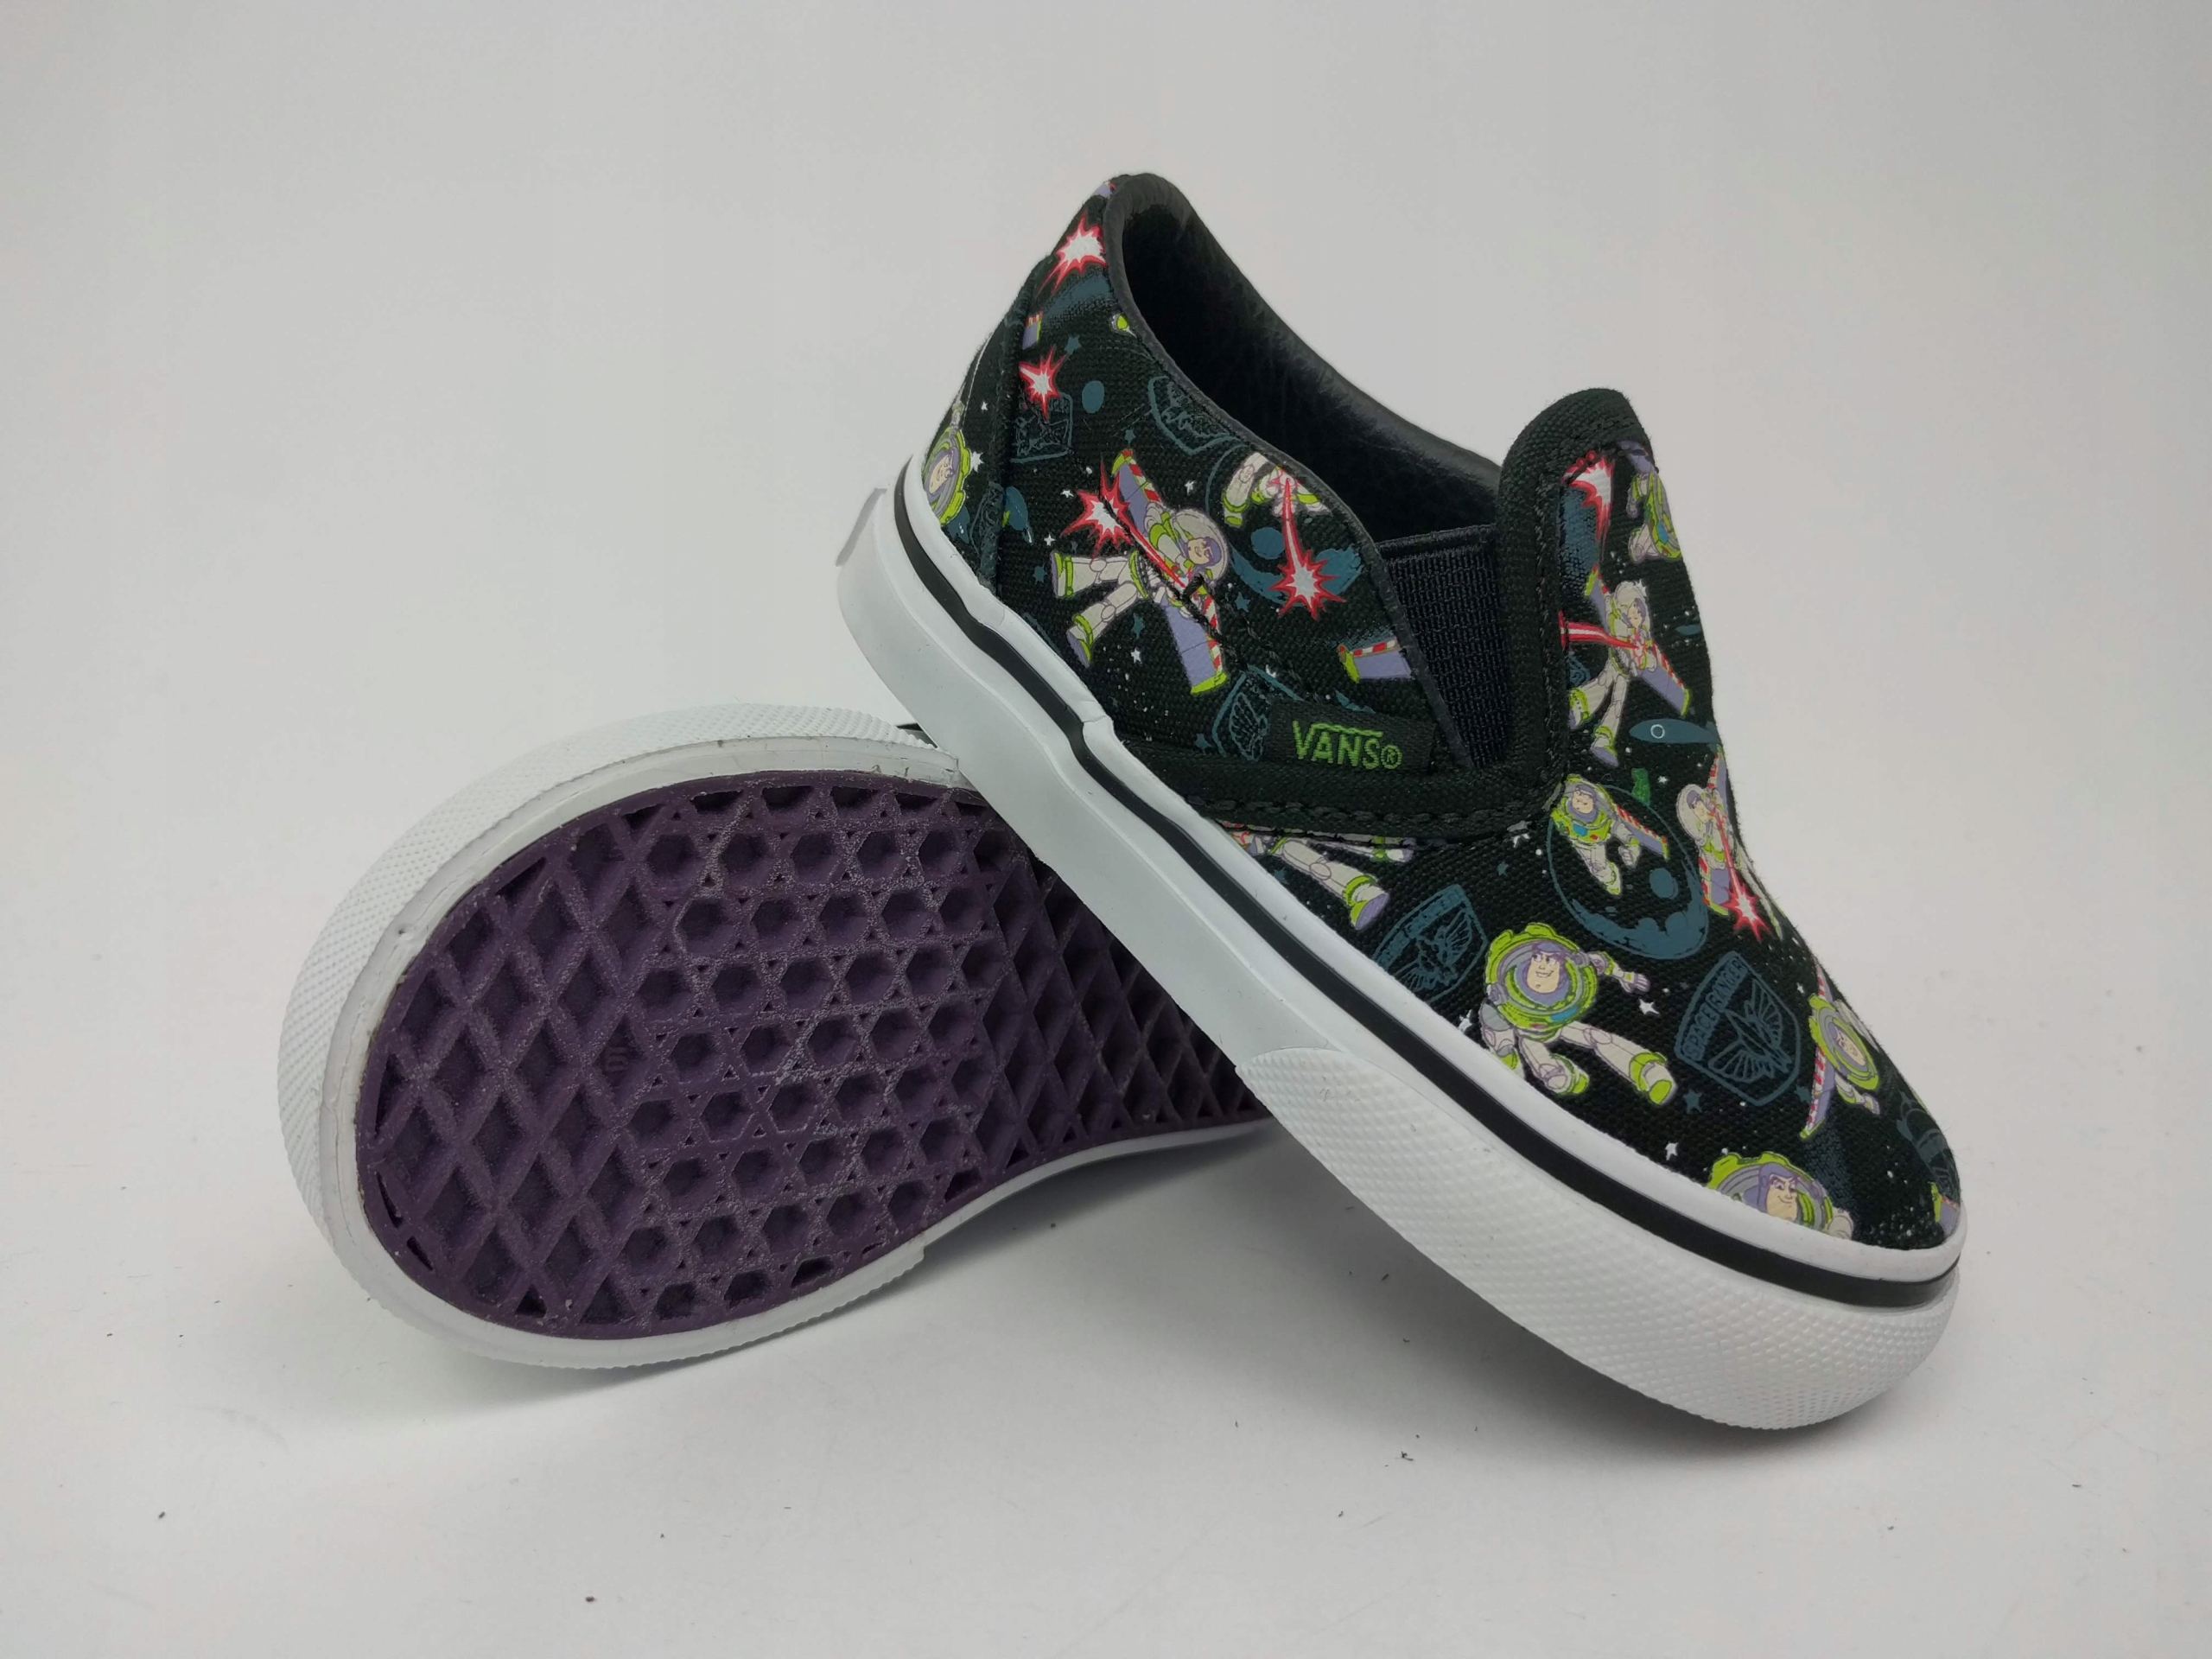 T Buty dziecięce VANS Classic Slip On (Toy Story) And